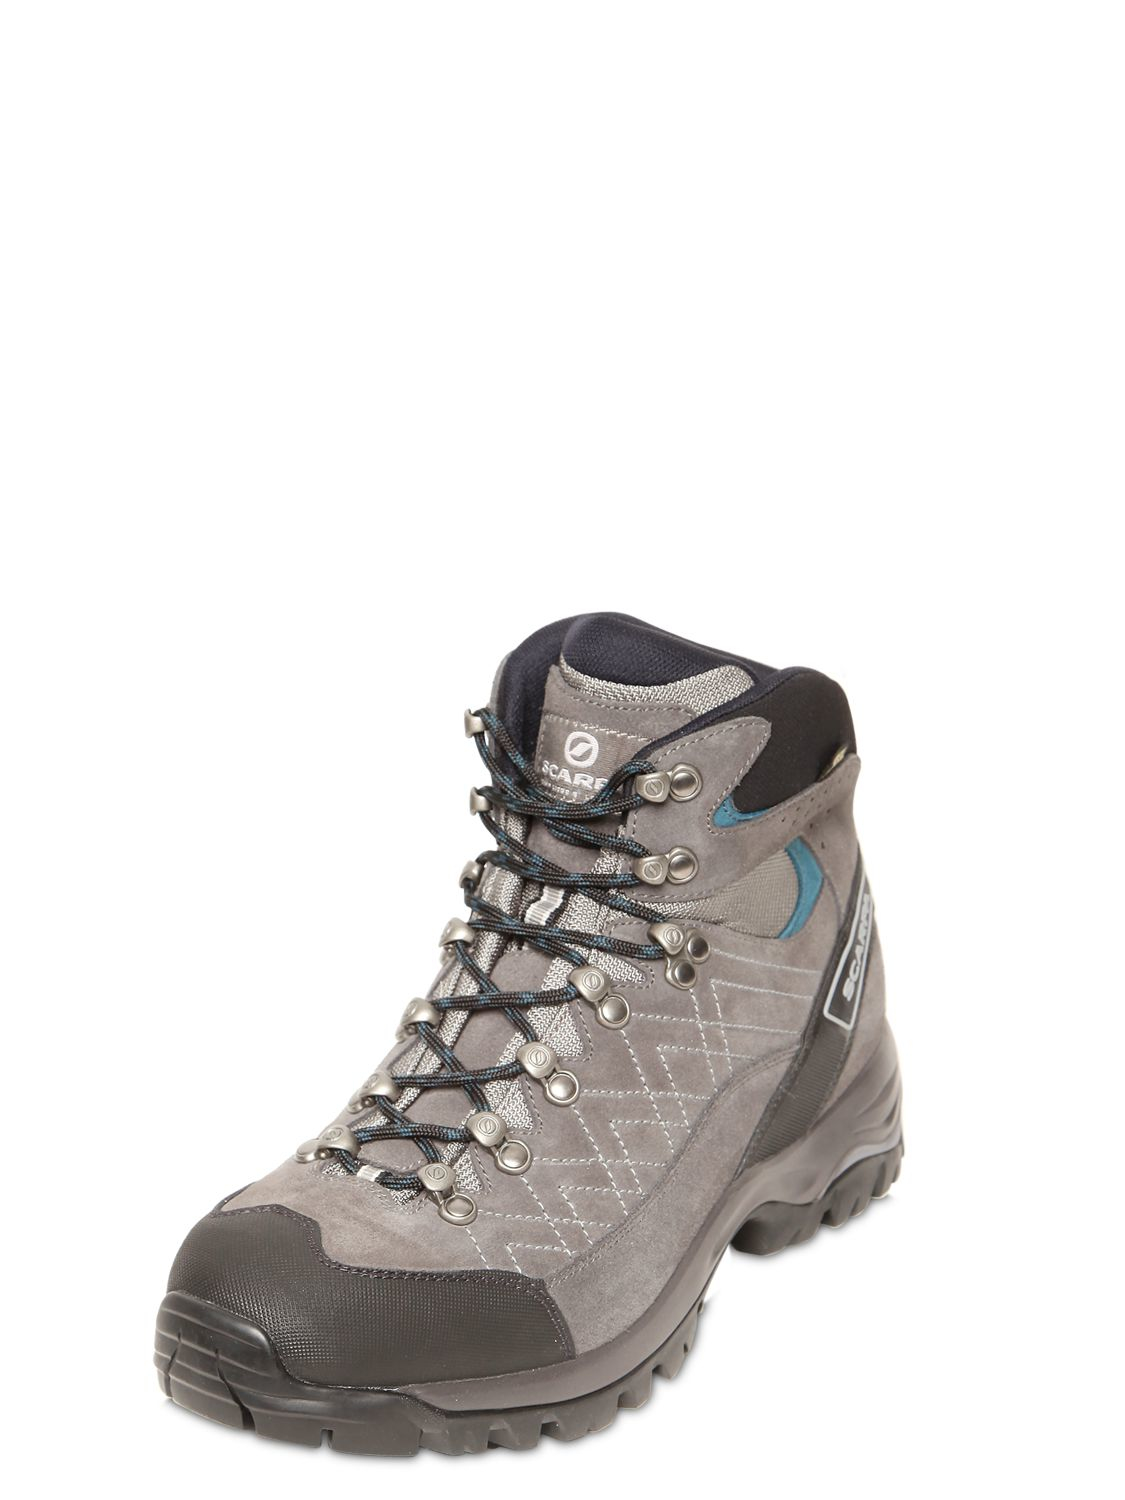 Lyst Scarpa Kailash Suede Trekking Boots In Gray For Men